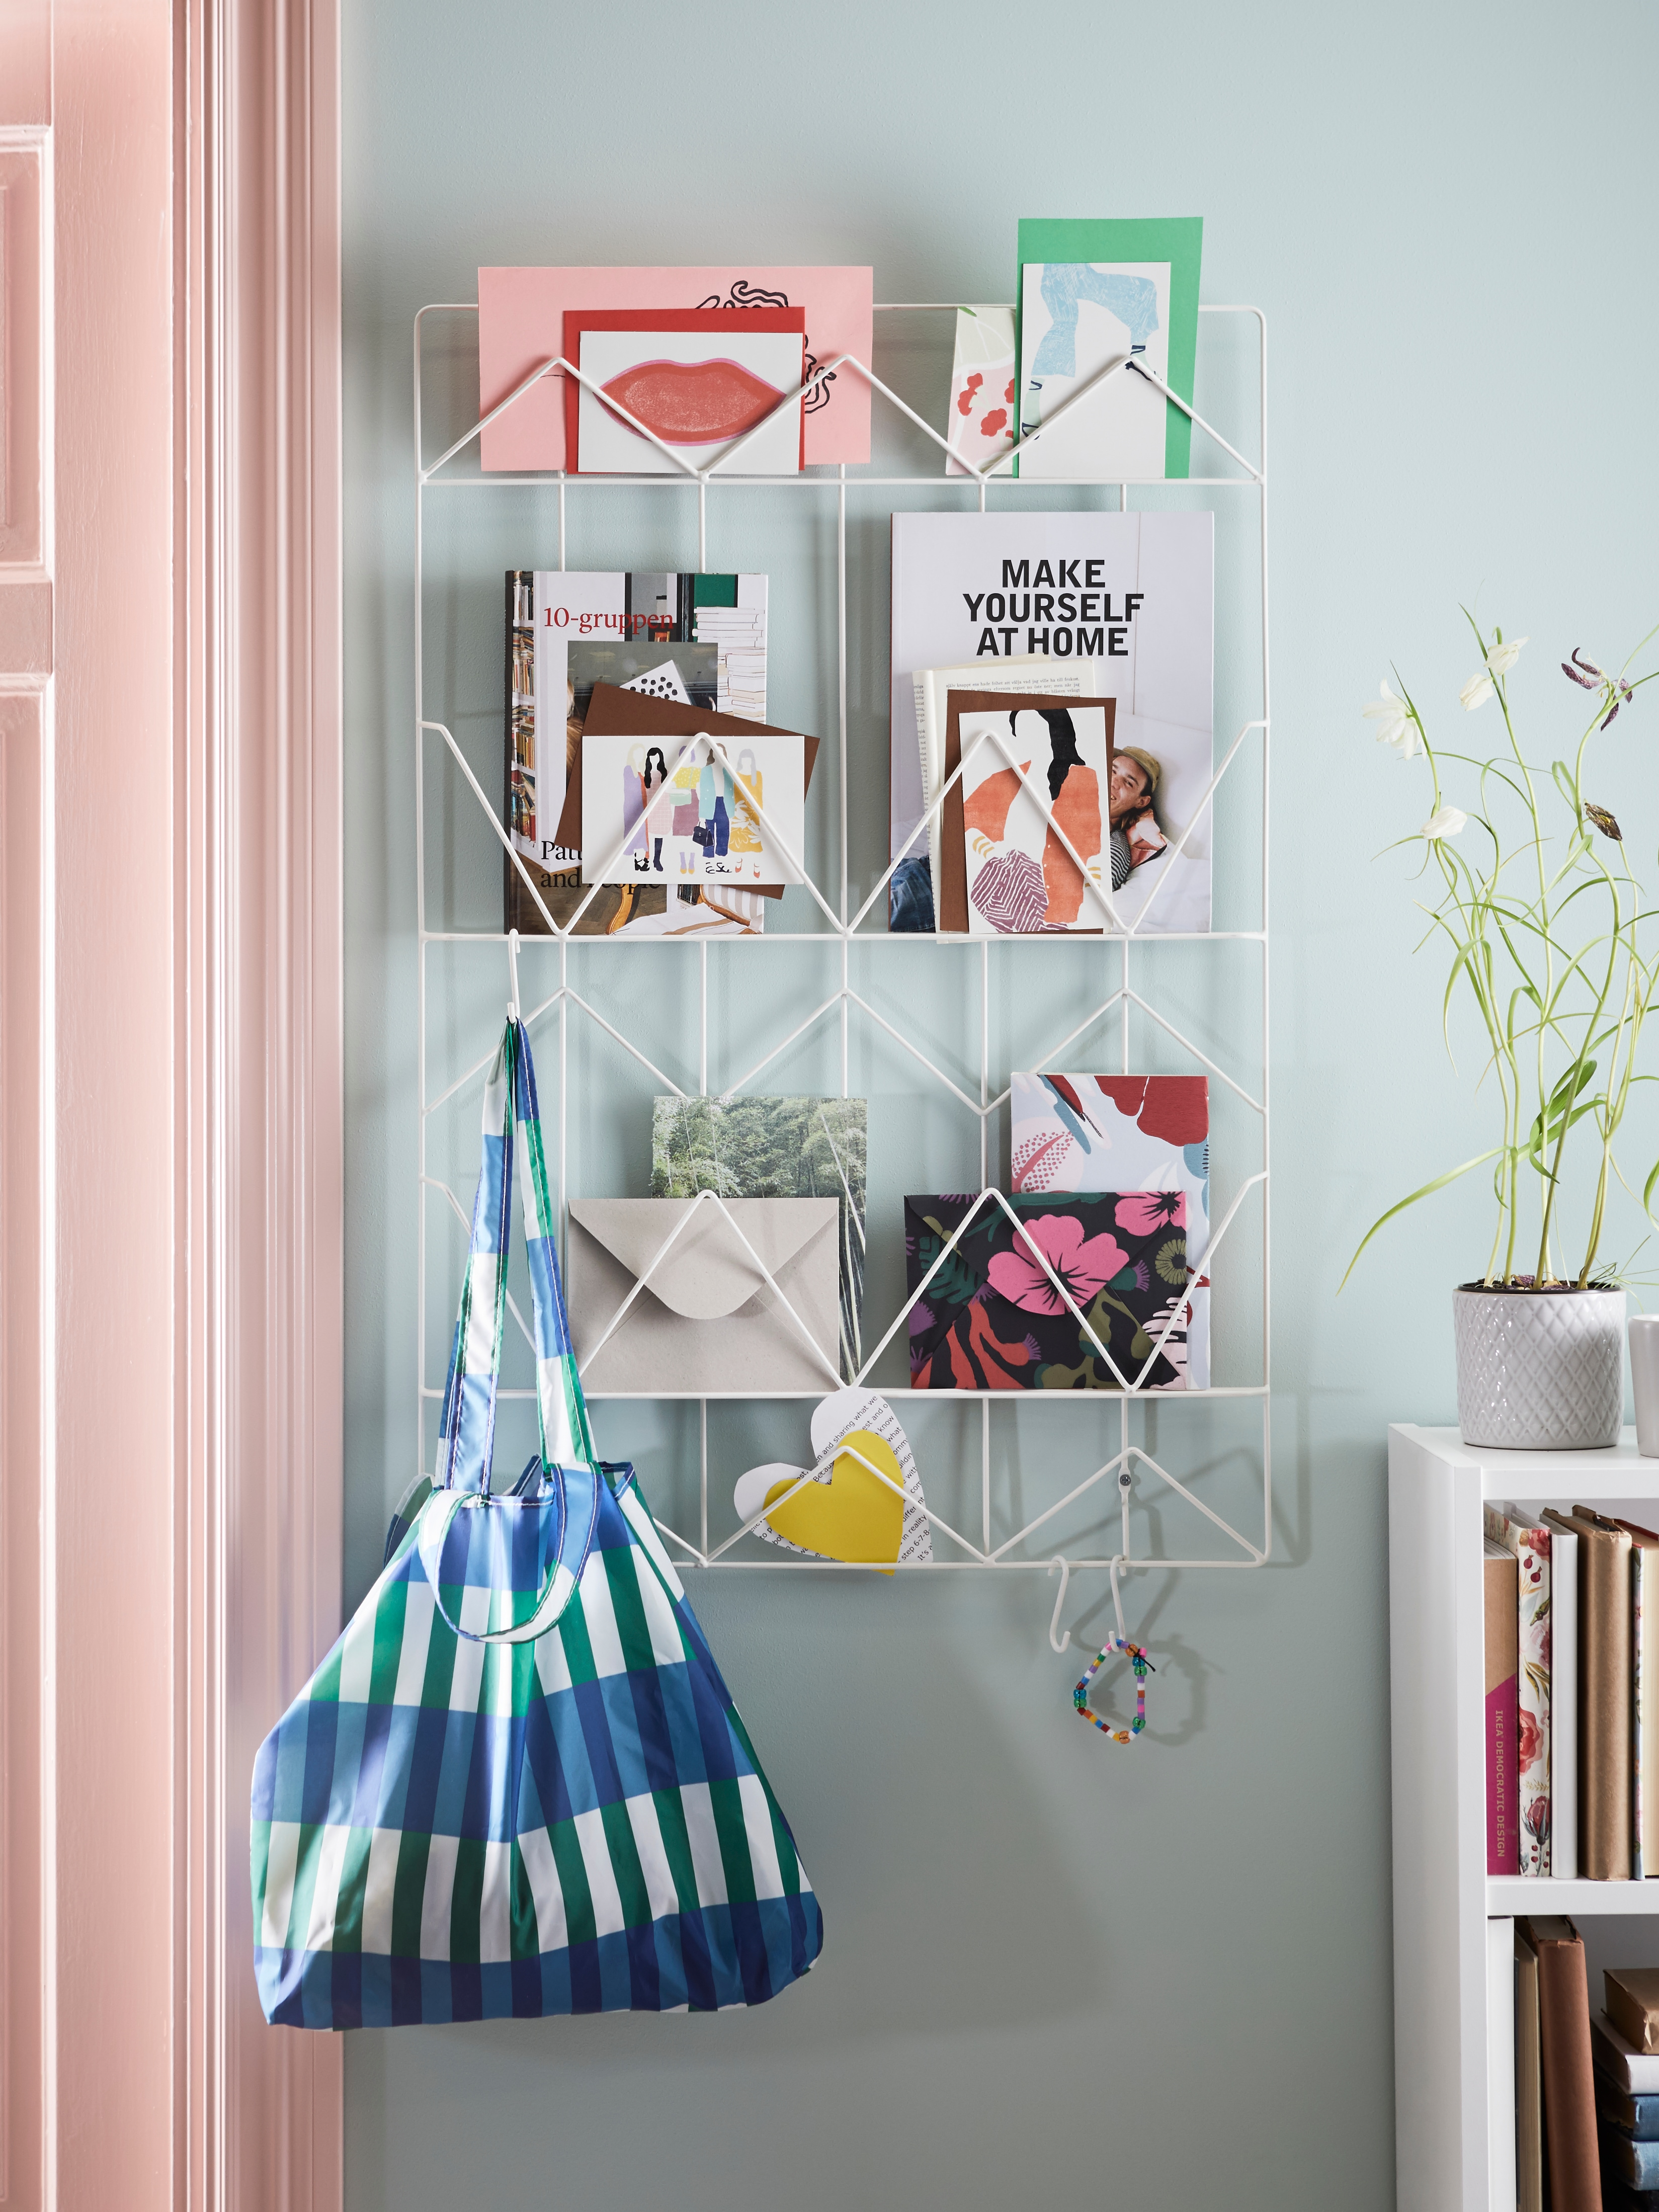 White steel KVICKSUND memo board with books and cards and a bag hanging on it, next to a bookshelf with a plant on top.